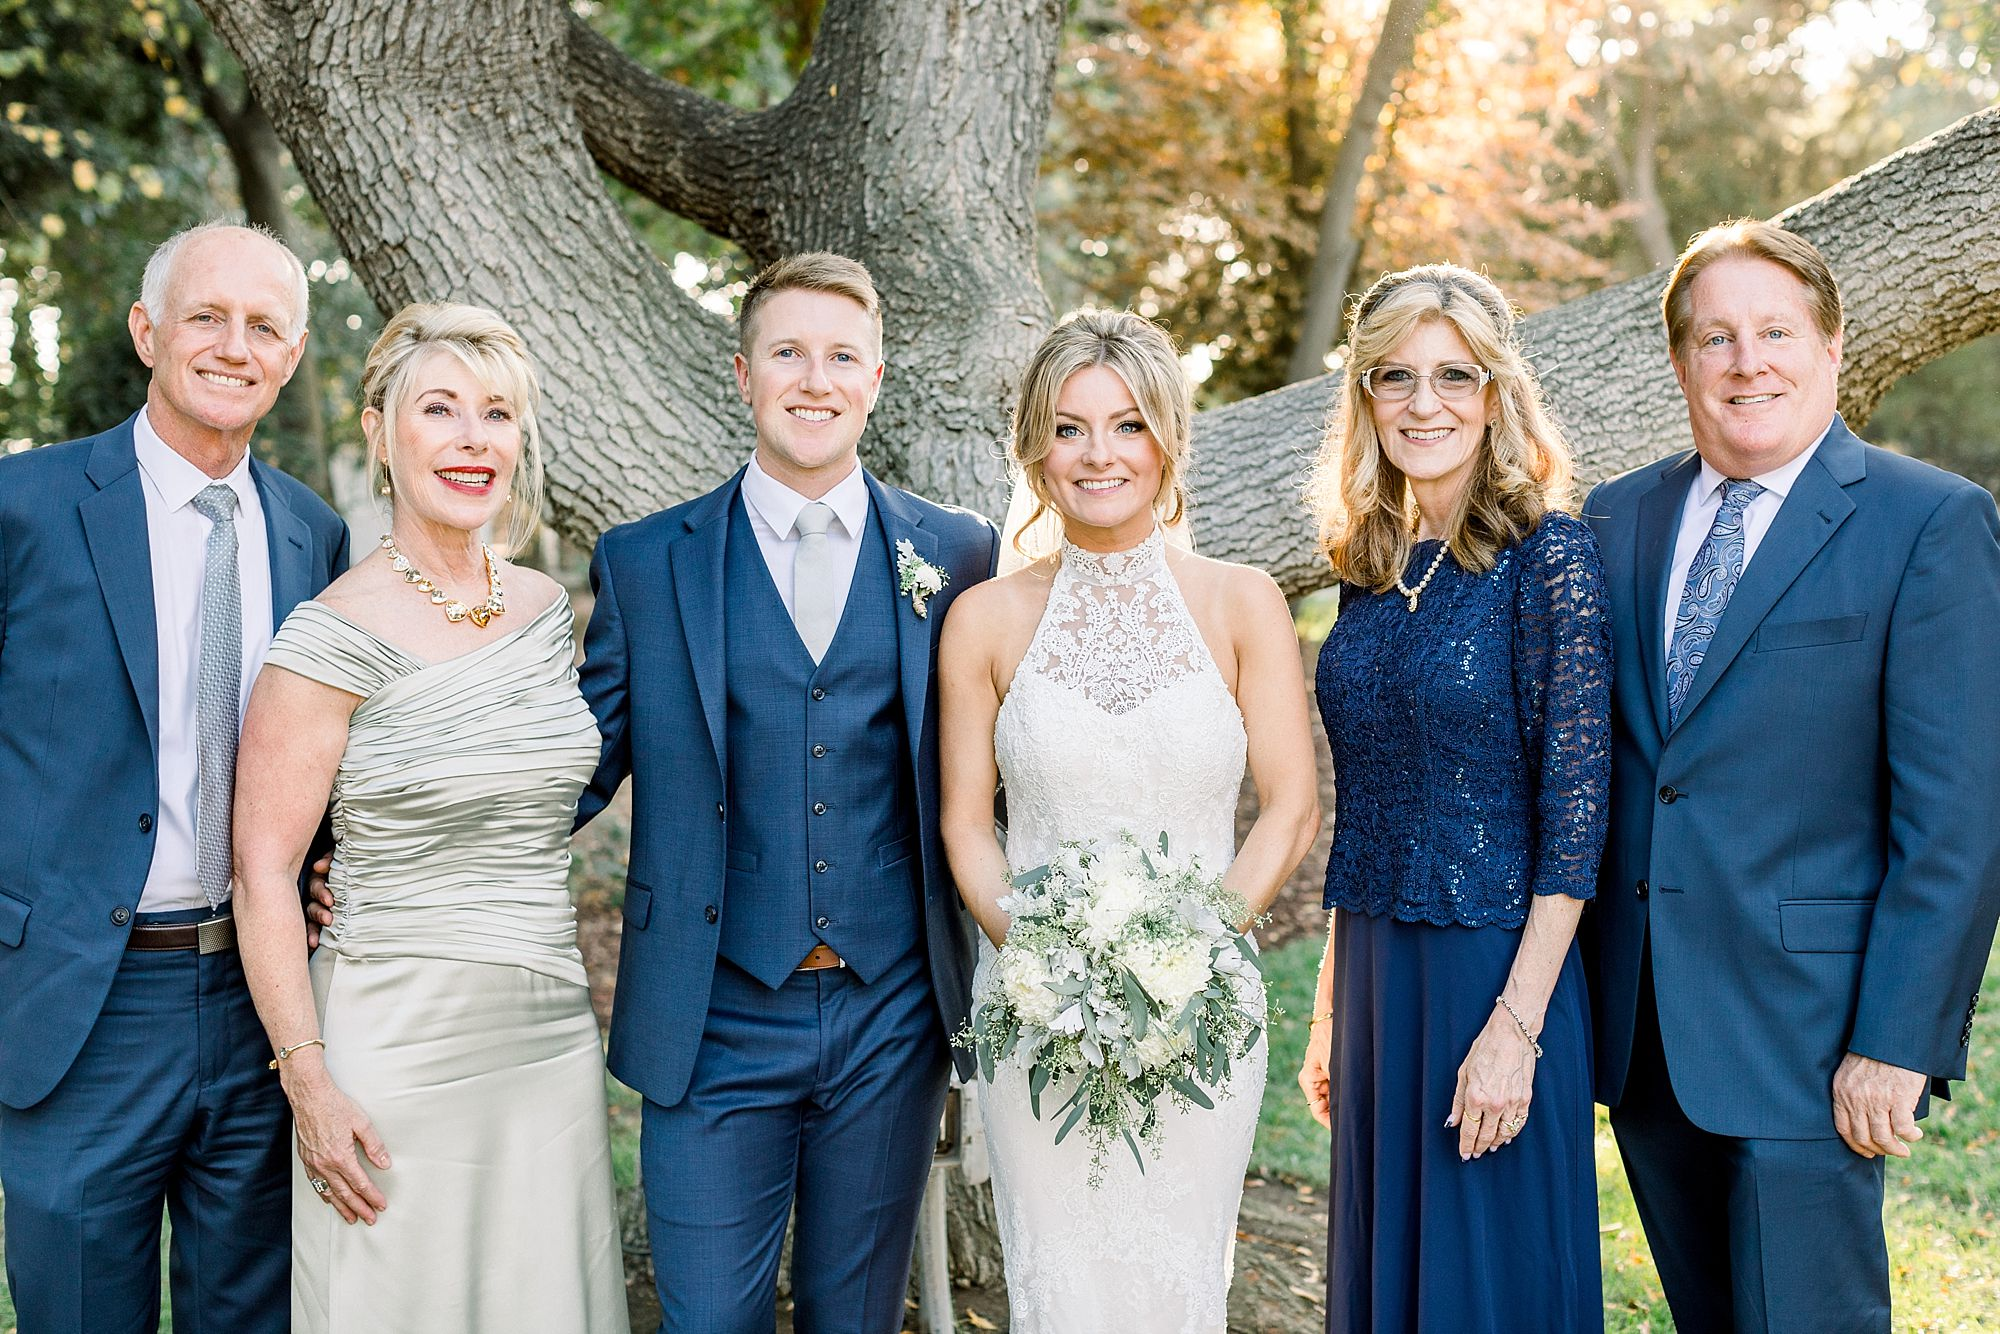 The Maples Wedding in Woodland California - Ashley Baumgartner - Sacramento Wedding Photographer - Sacramento Film Photographer_0045.jpg